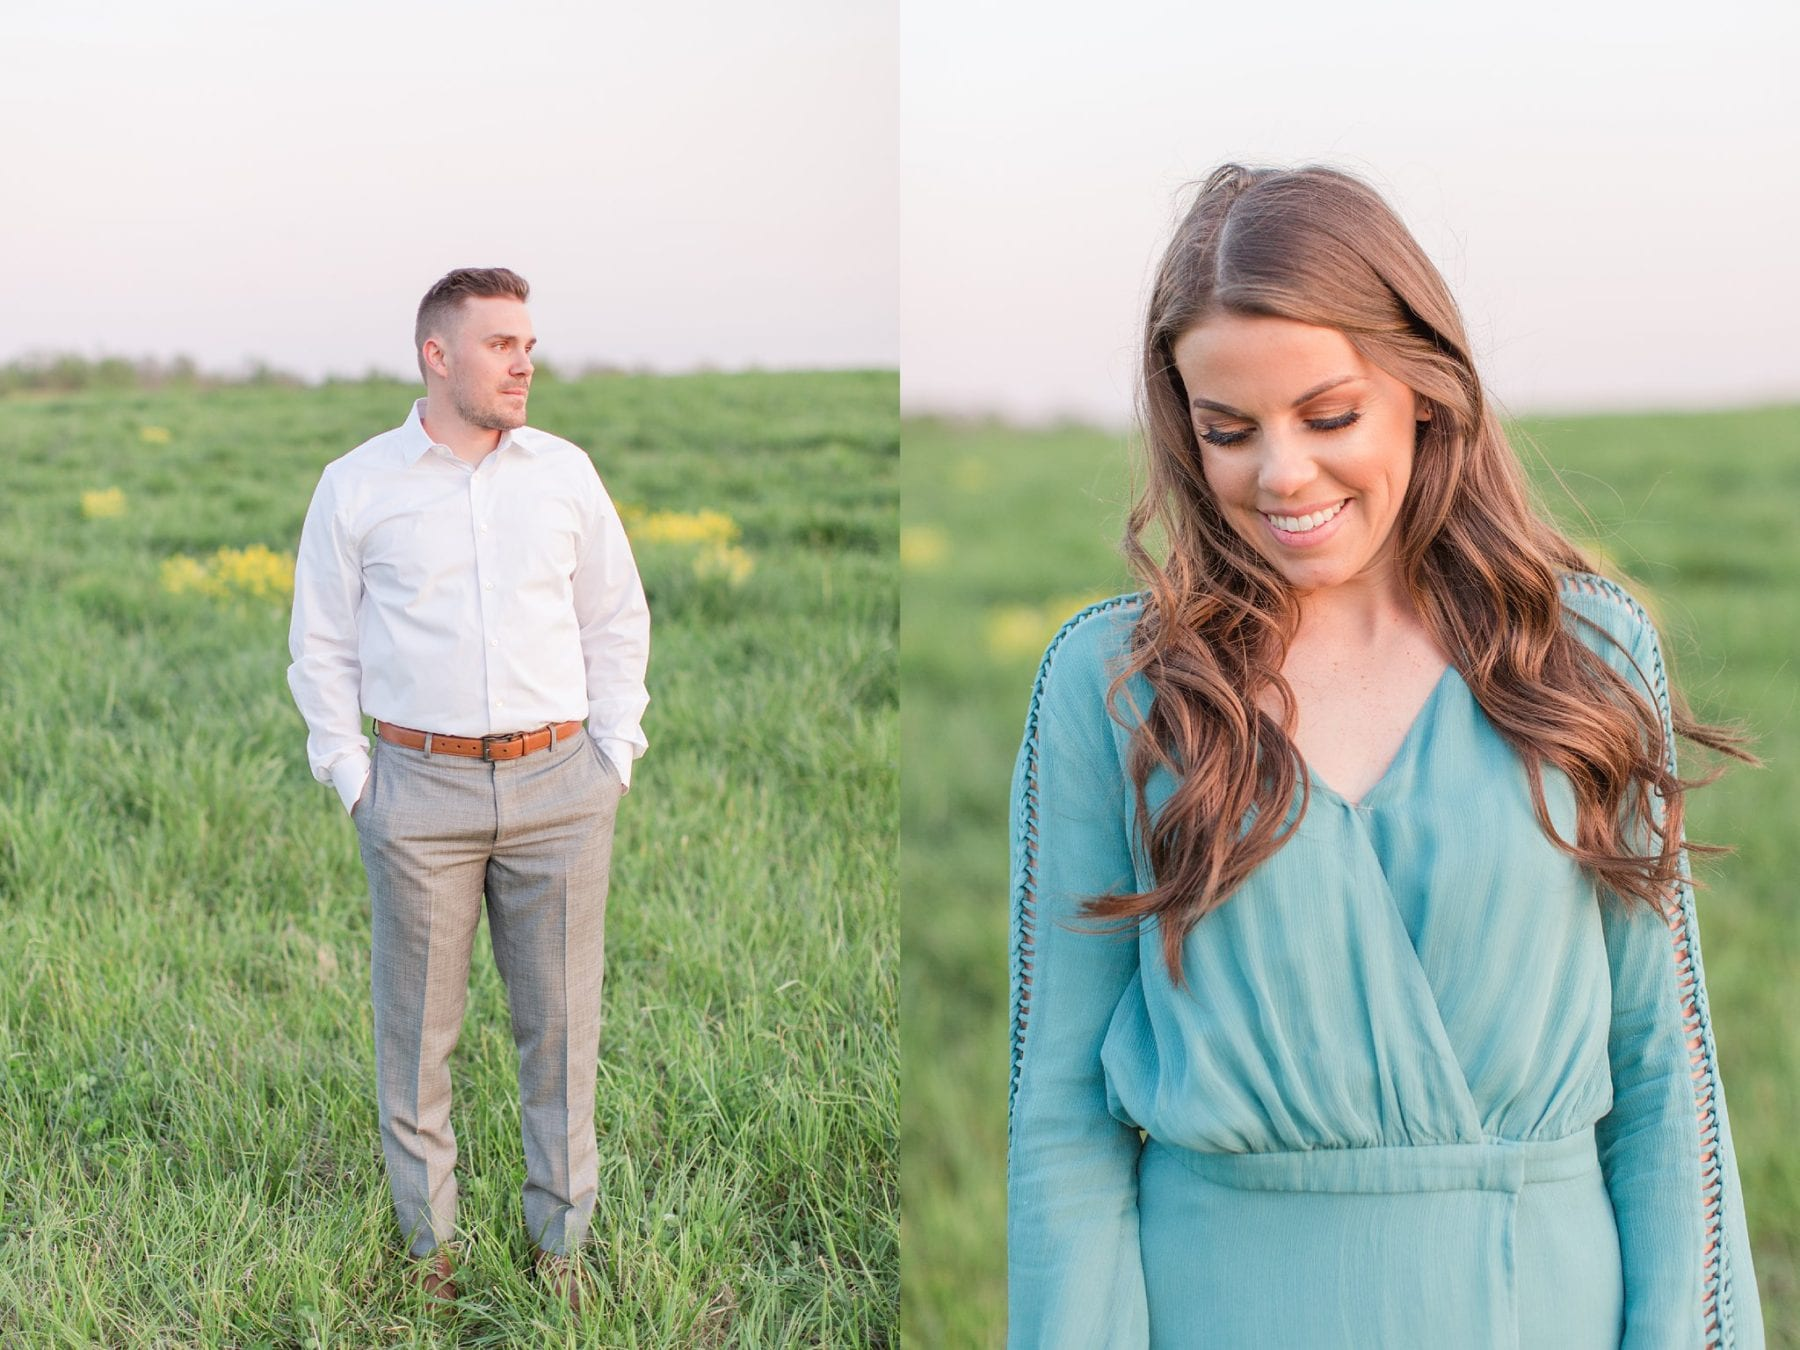 Goodstone Inn Engagement Session Virginia Wedding Photographer Megan Kelsey Photography-357.jpg